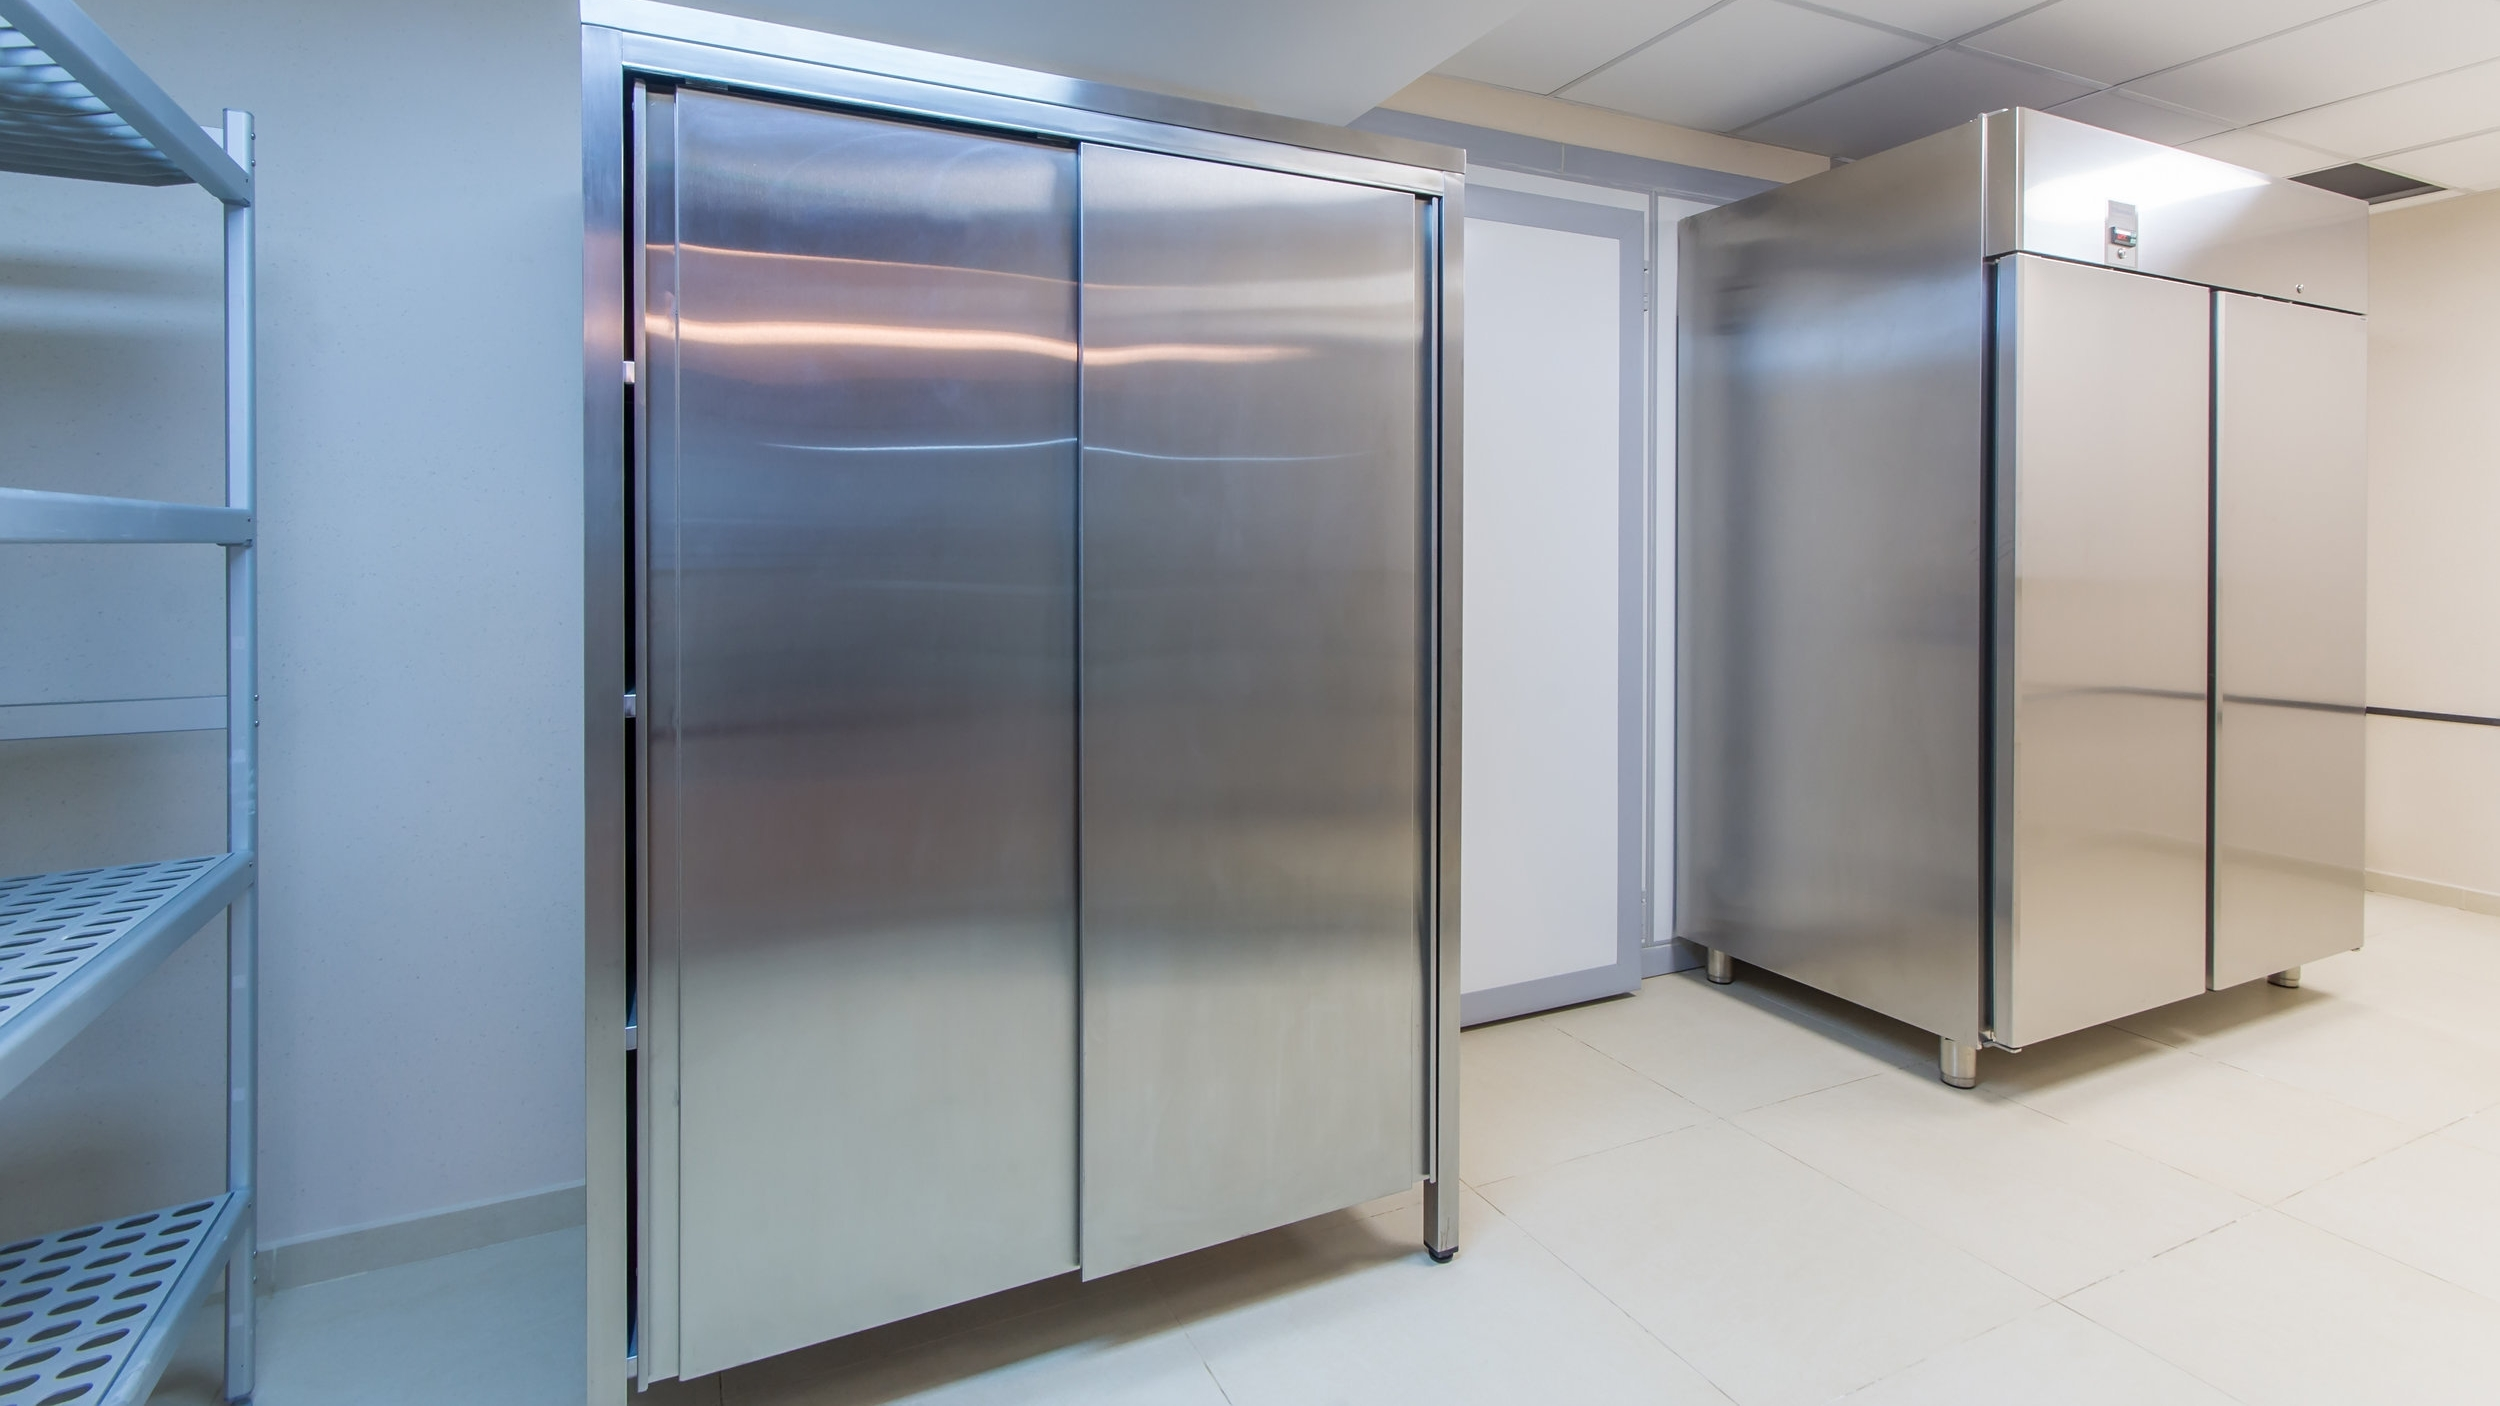 don't wait until you refrigerator dies to get it fixed. Call today for a free estimate. -